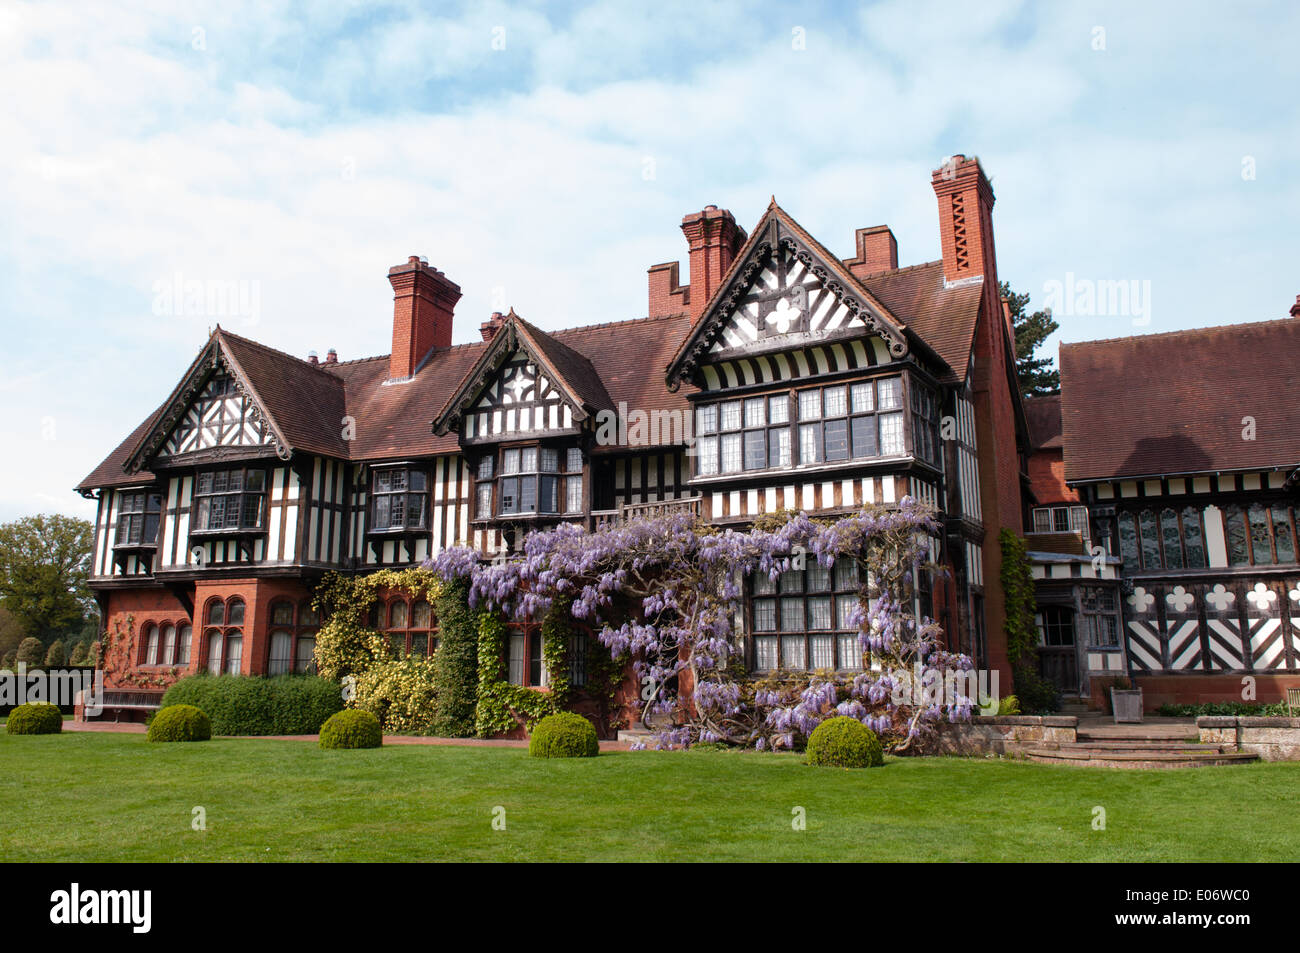 View of the National Trust-owned Wightwick Manor, in Wolverhampton, with beautiful flowering wisteria covering the West wing - Stock Image